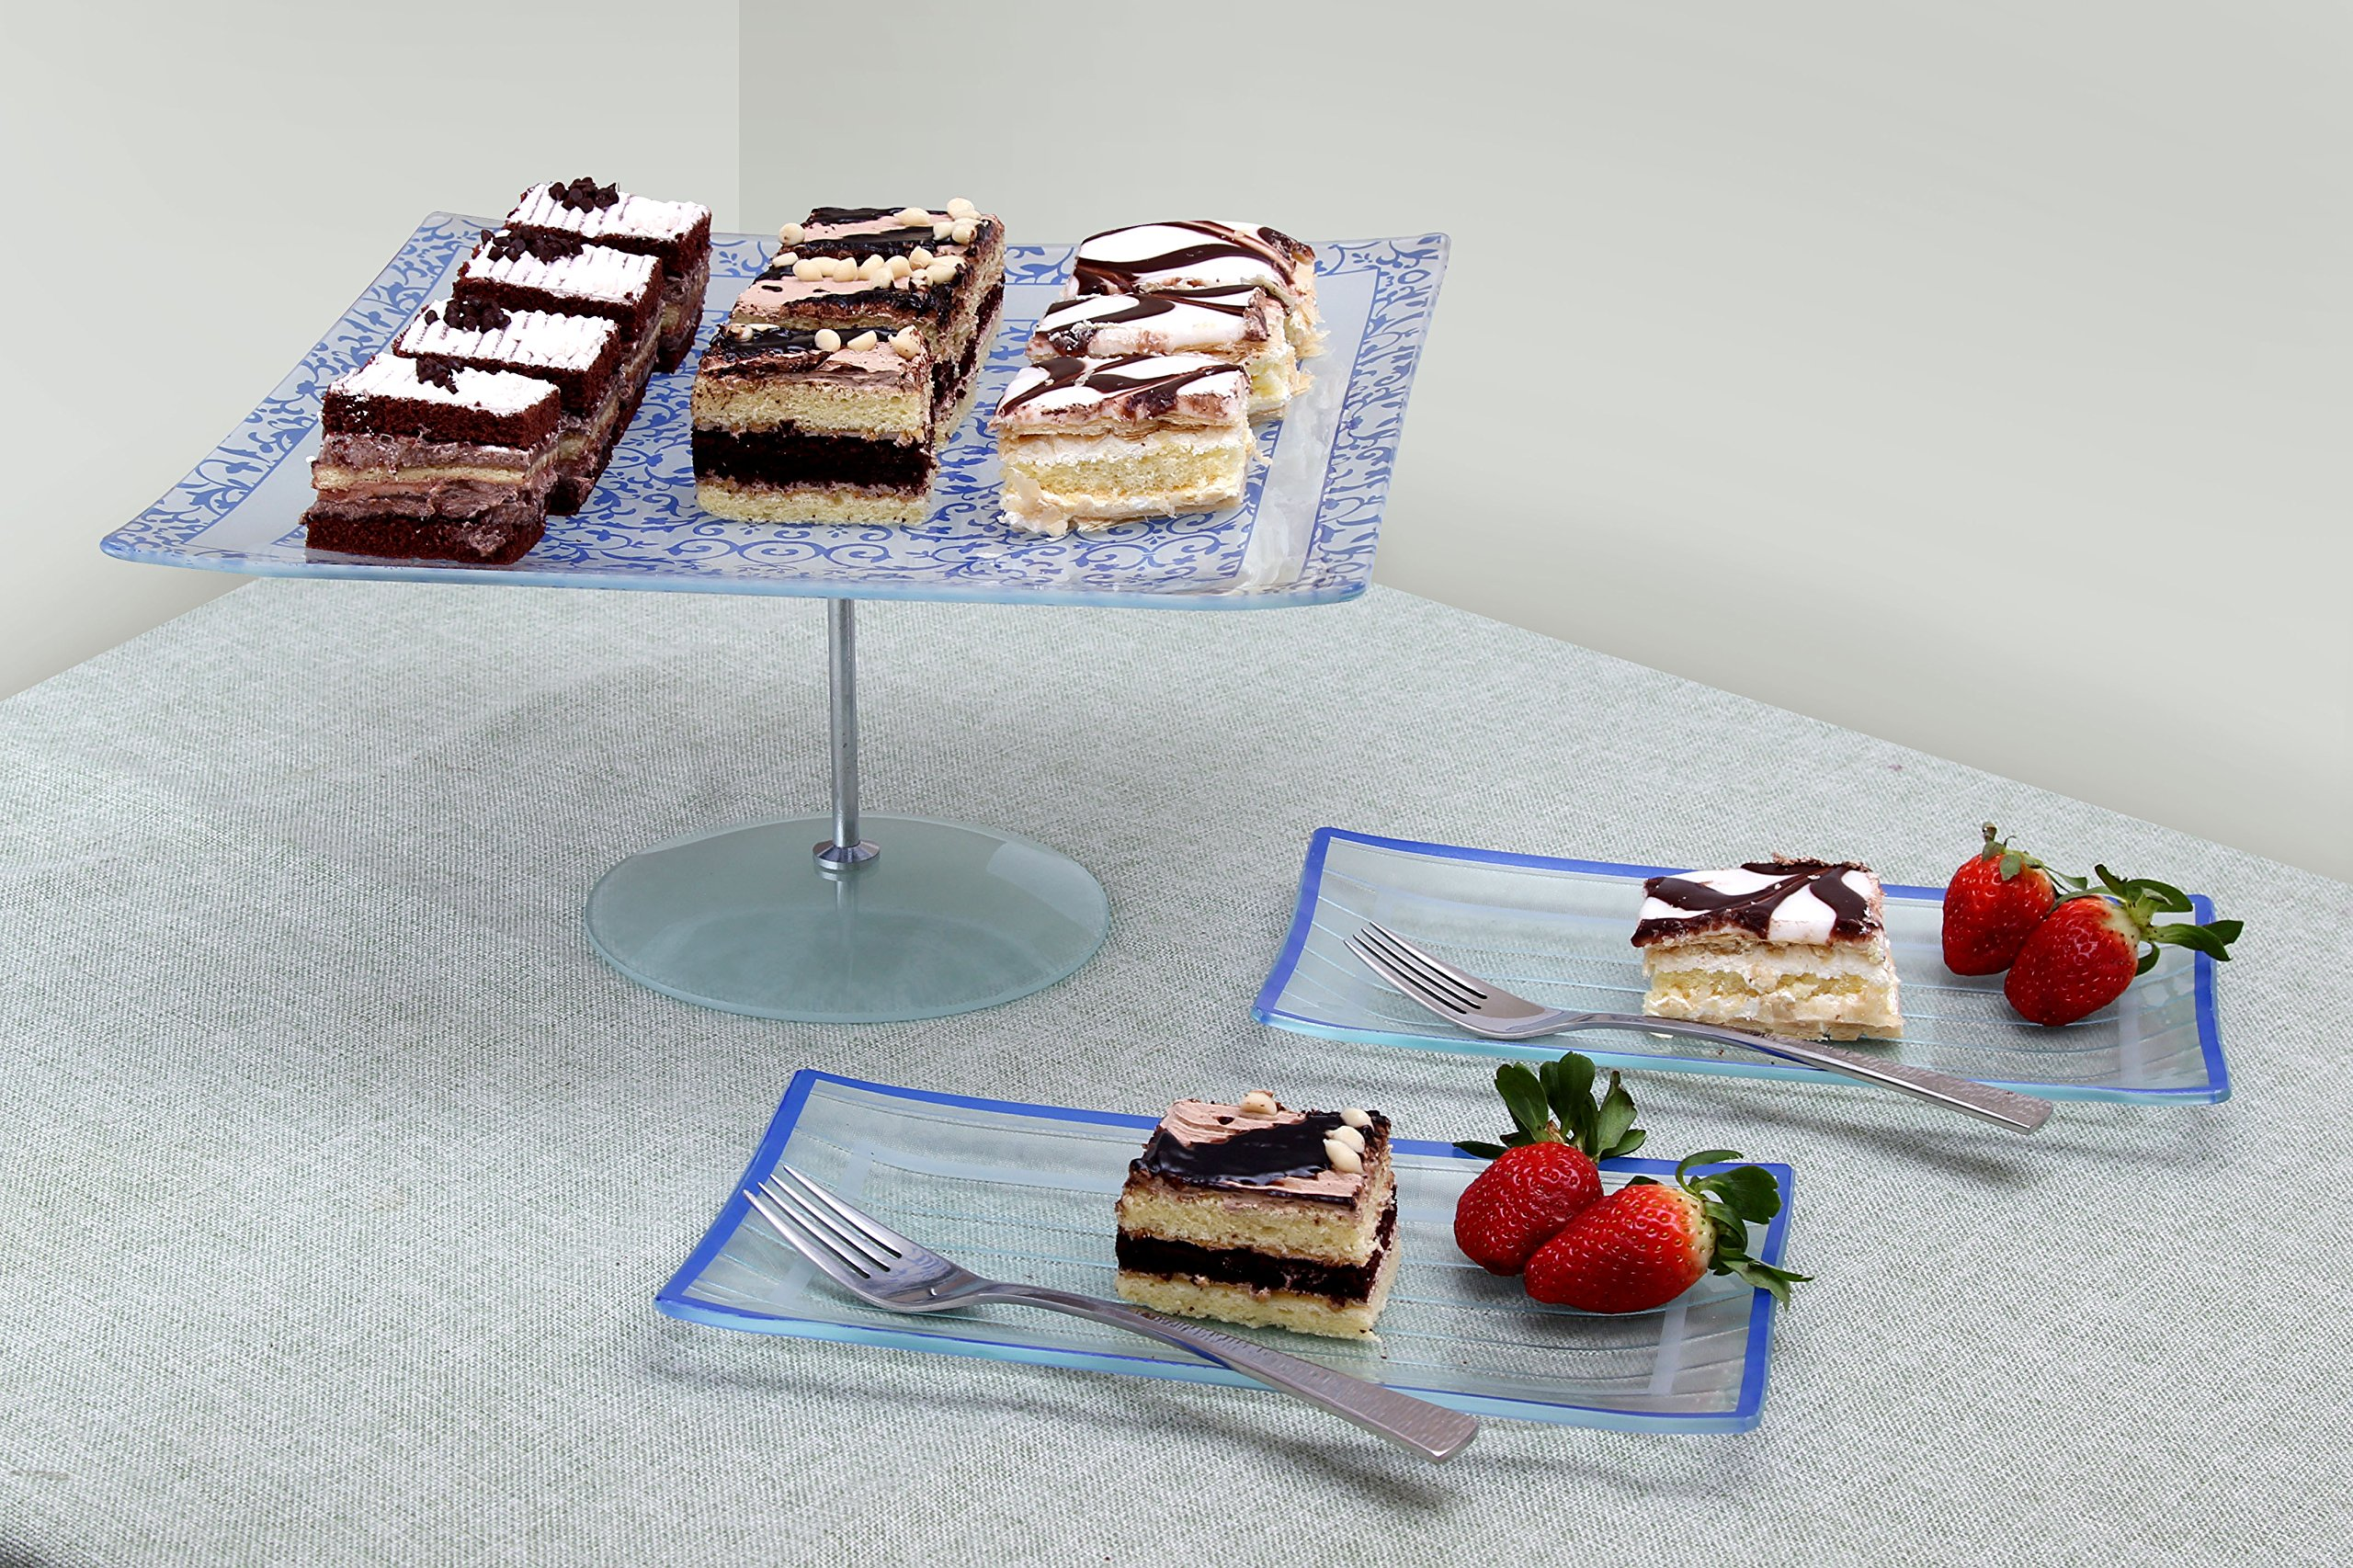 GAC Rectangular Tempered Glass Salad/Dessert Plate Set With Blue Trim, Service for 8, Break and Chip Resistant – Microwave and Oven Safe – Dishwasher Safe - Decorative Serving Plate by GAC (Image #4)